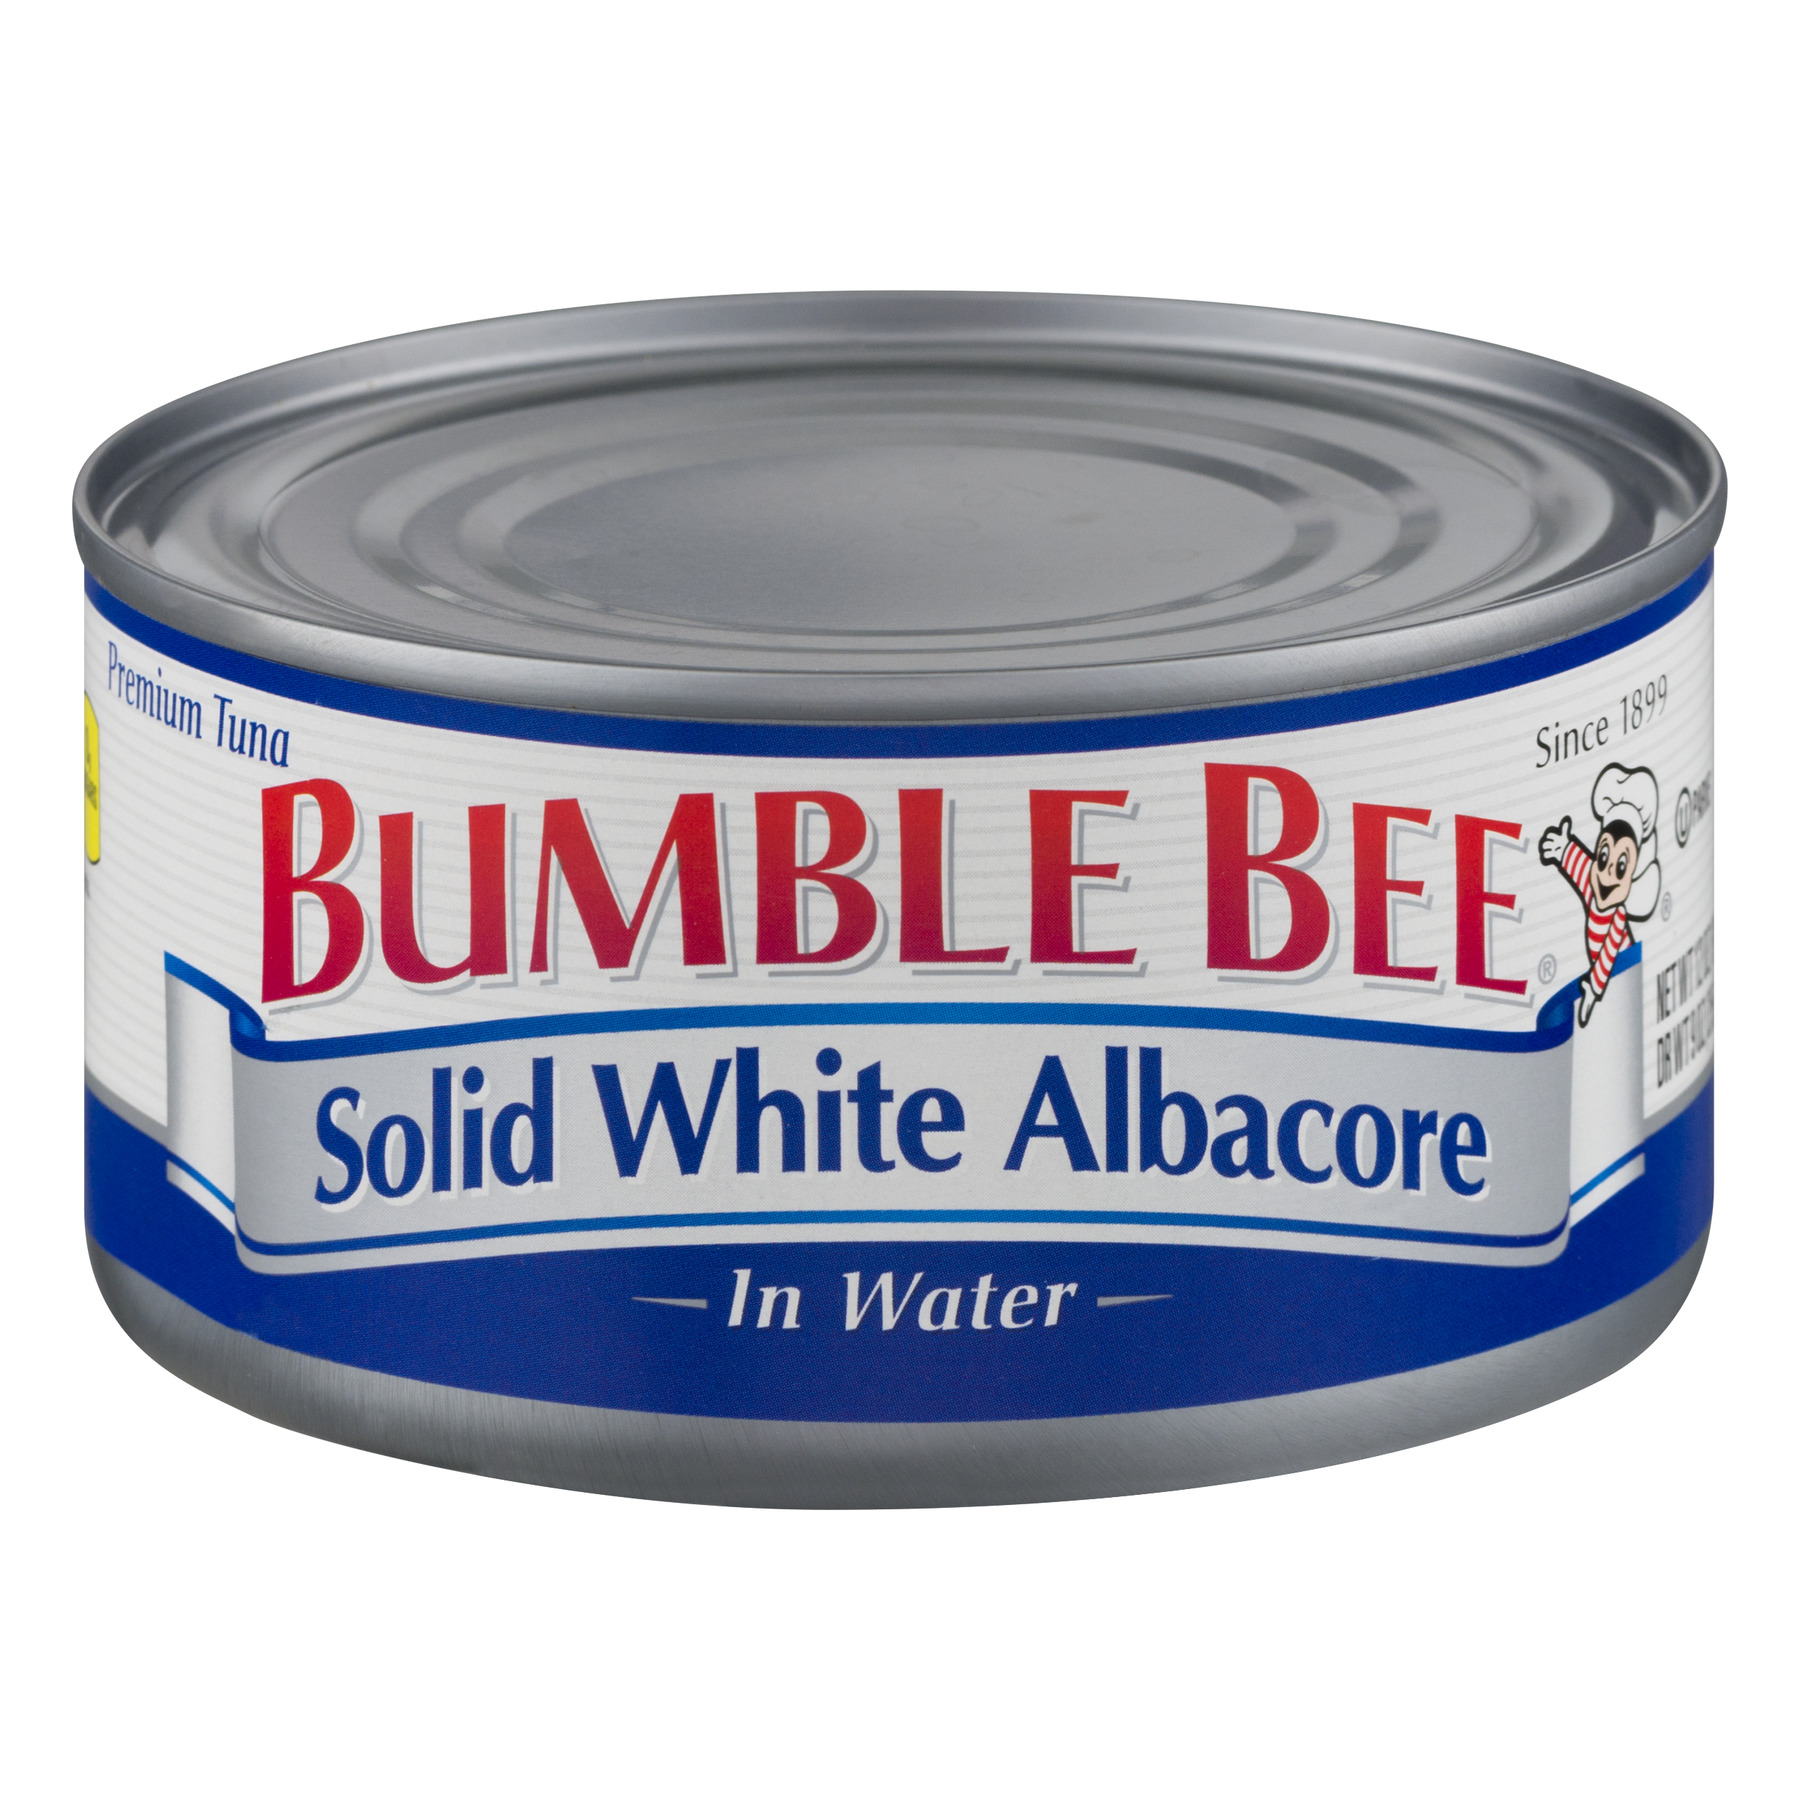 Bumble Bee Solid White Albacore Tuna in Water, Canned Tuna Fish, High Protein Food, 12oz Can